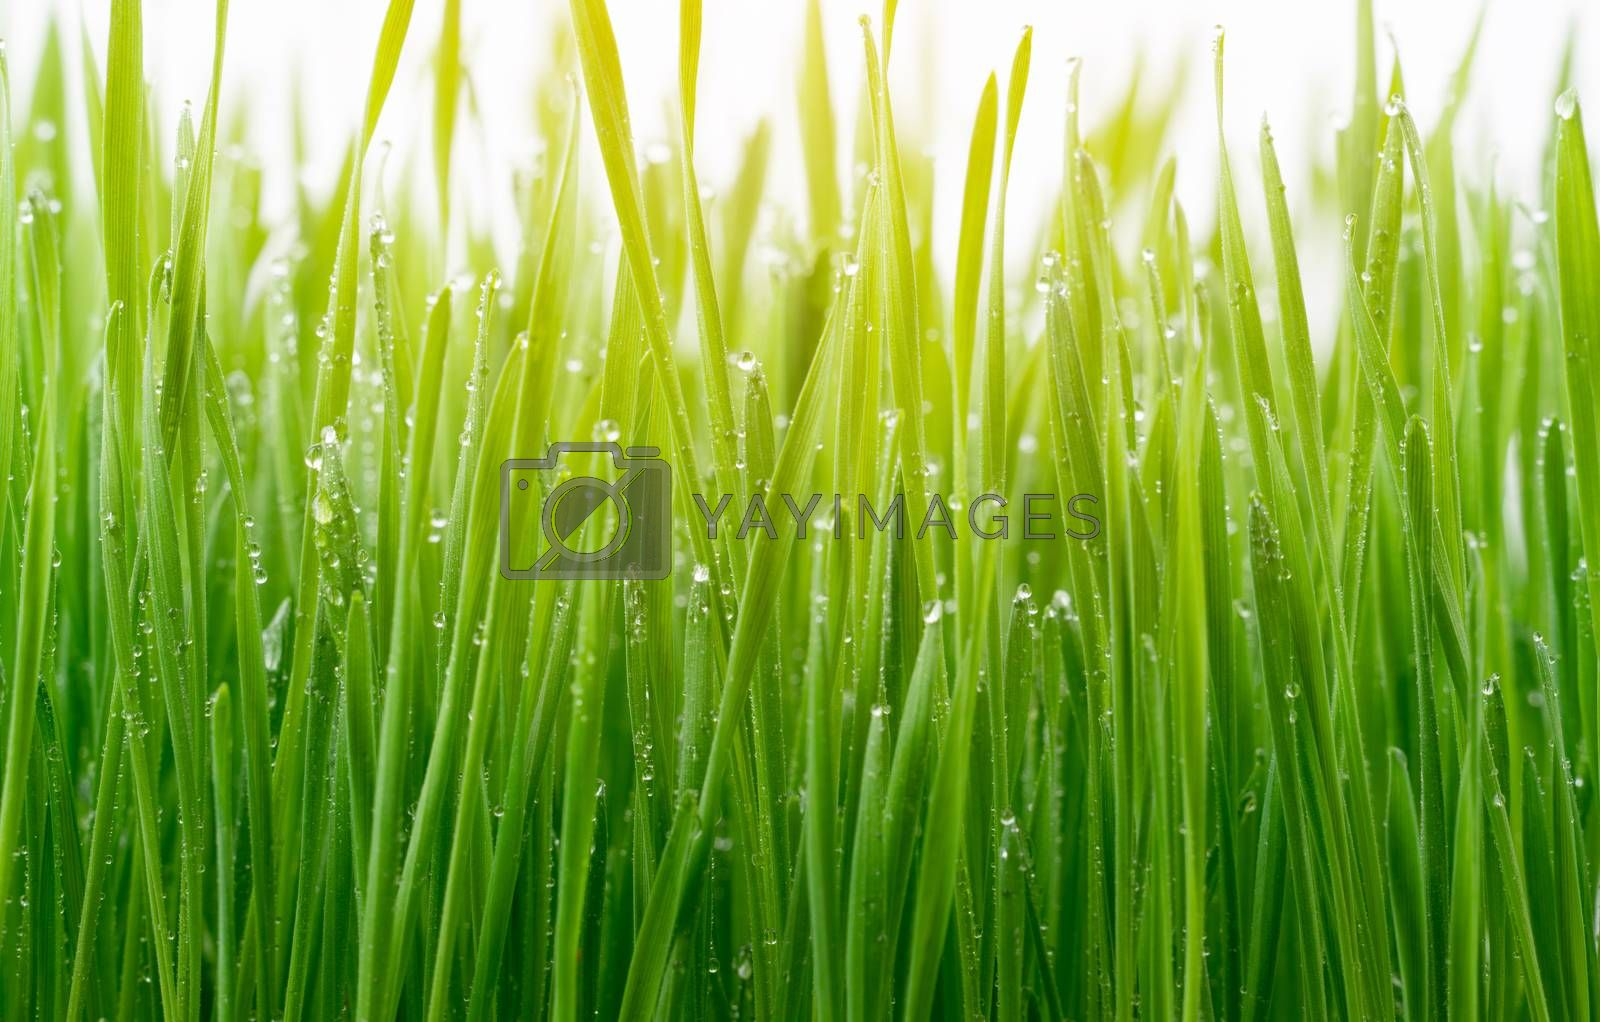 Green wheat grass isolated on white background by anankkml